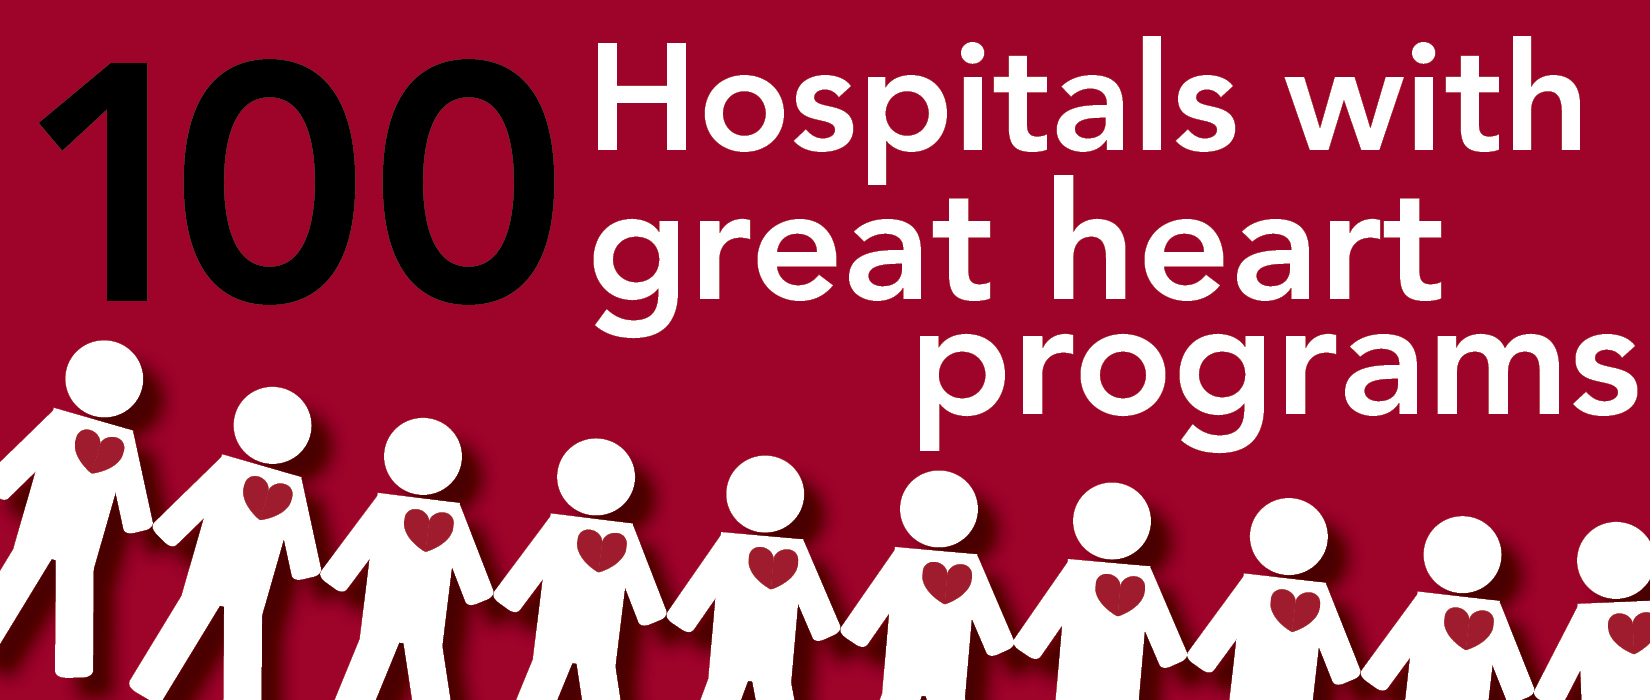 100 hospitals with great heart programs | 2016